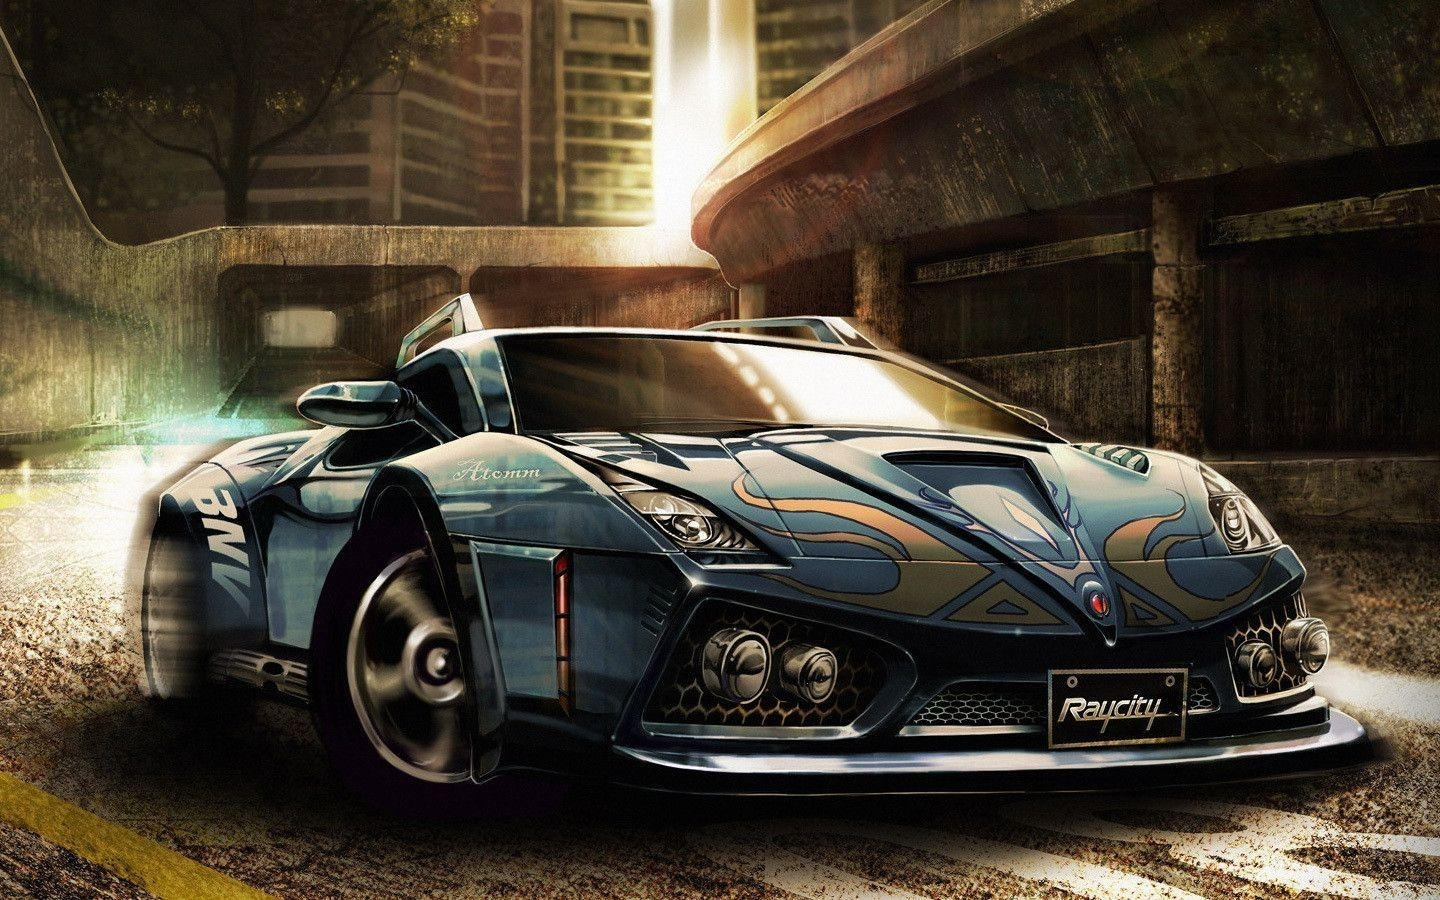 cool car wallpapers hd - wallpaper cave